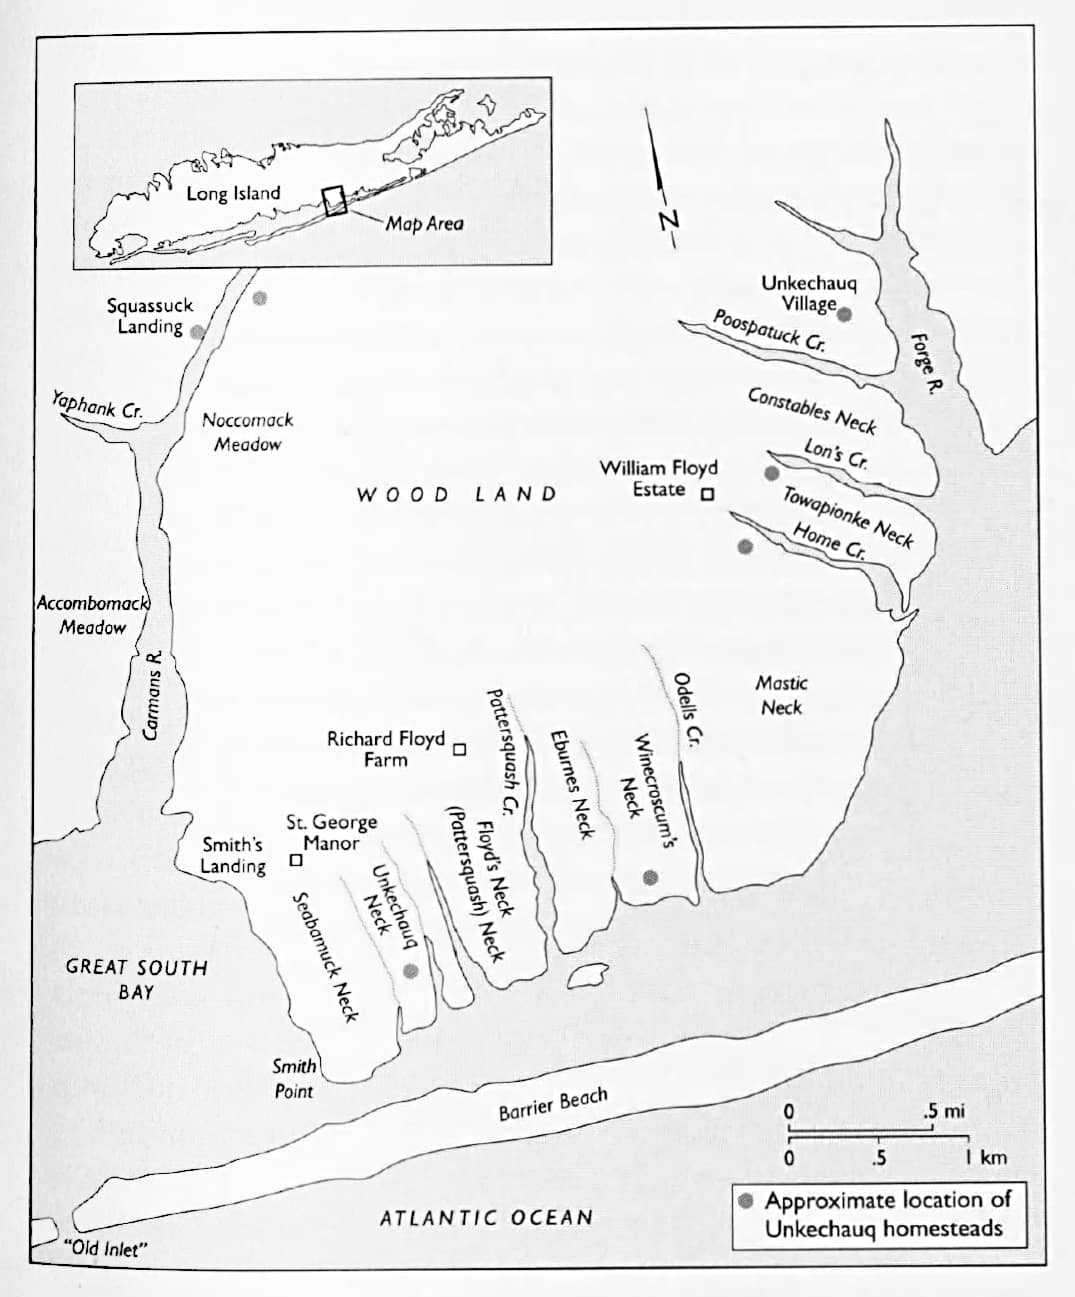 Unkechaug-Homesteads-and-English-colonial-estates-on-Mastic-Peninsula-ca-1750-from-John-Strong-The-Unkechaug-Indians-of-Eastern-Long-Island William Floyd Estate Jeremy Dennis On This Site